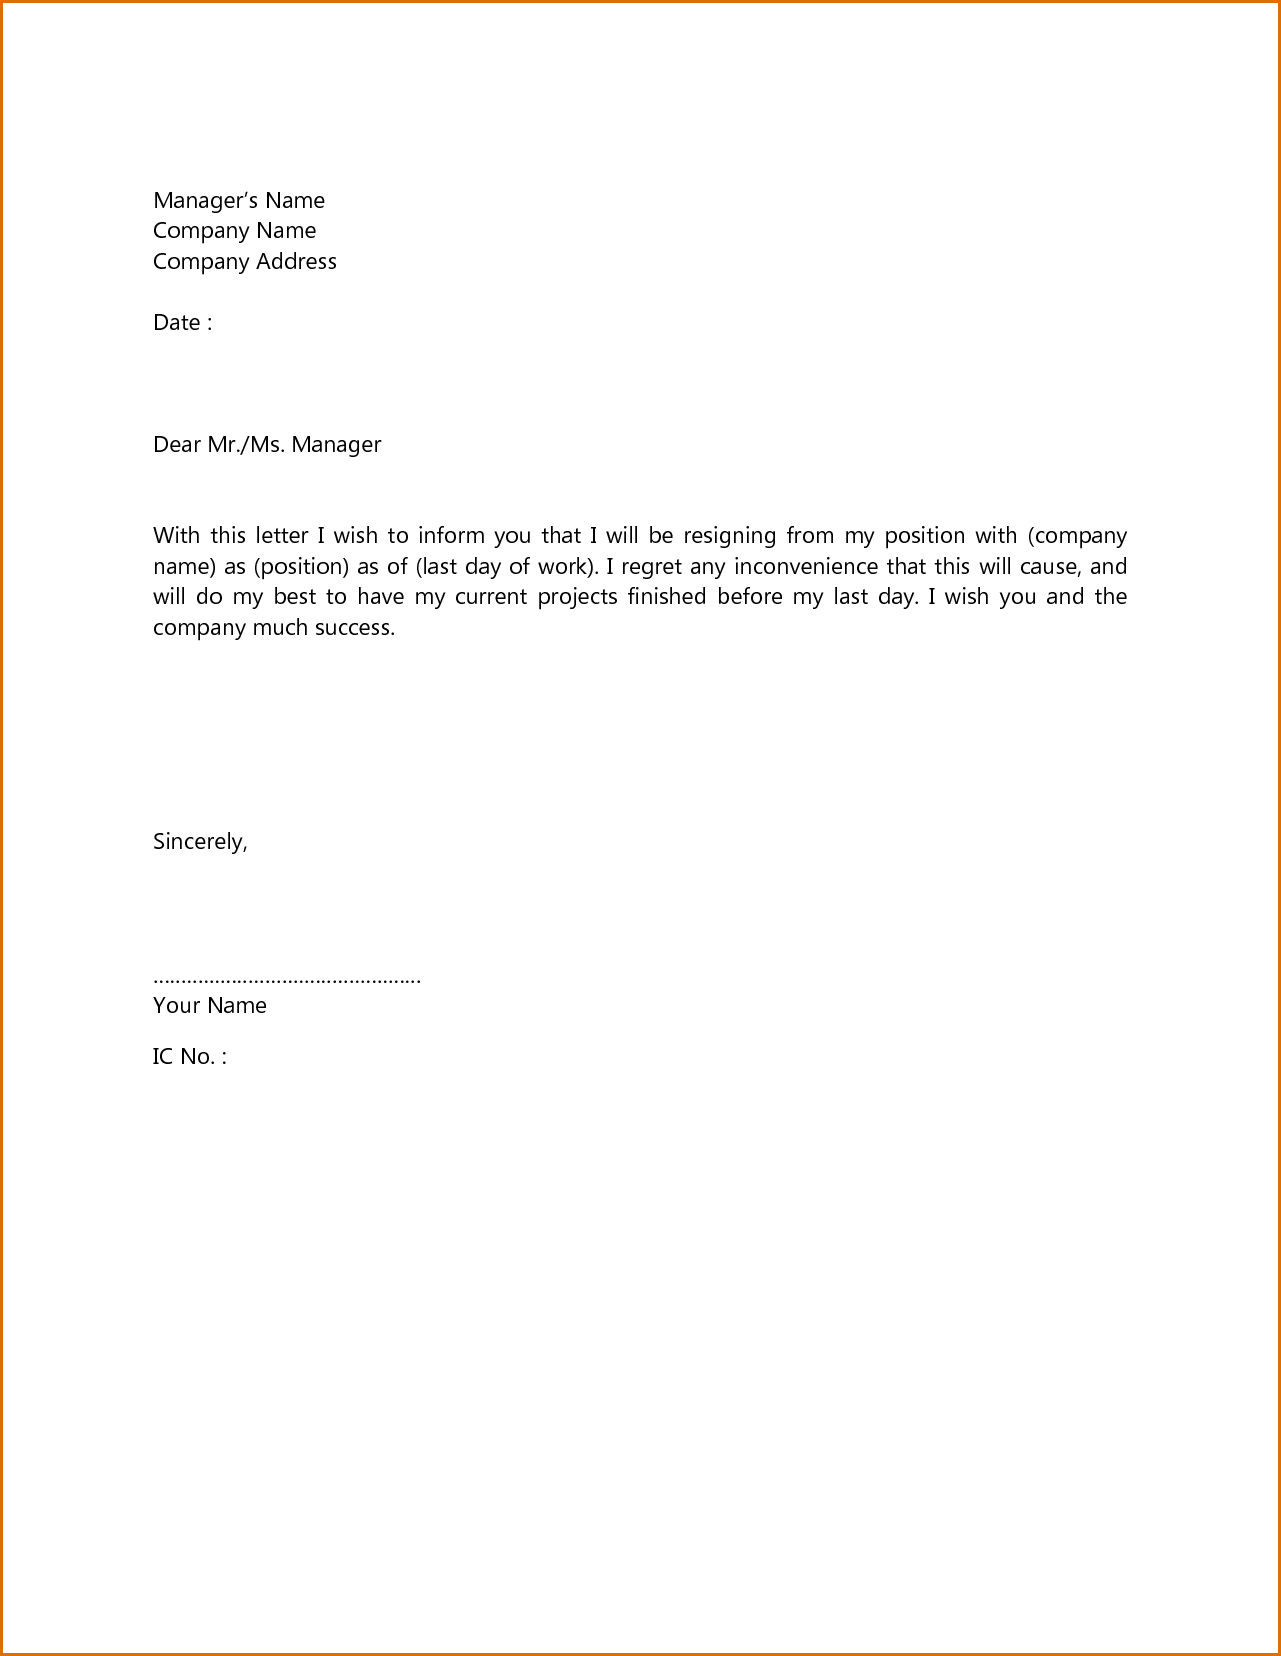 Termination letter sample singapore formal resignation cover samples termination letter sample singapore formal resignation cover samples insurance agent spiritdancerdesigns Images